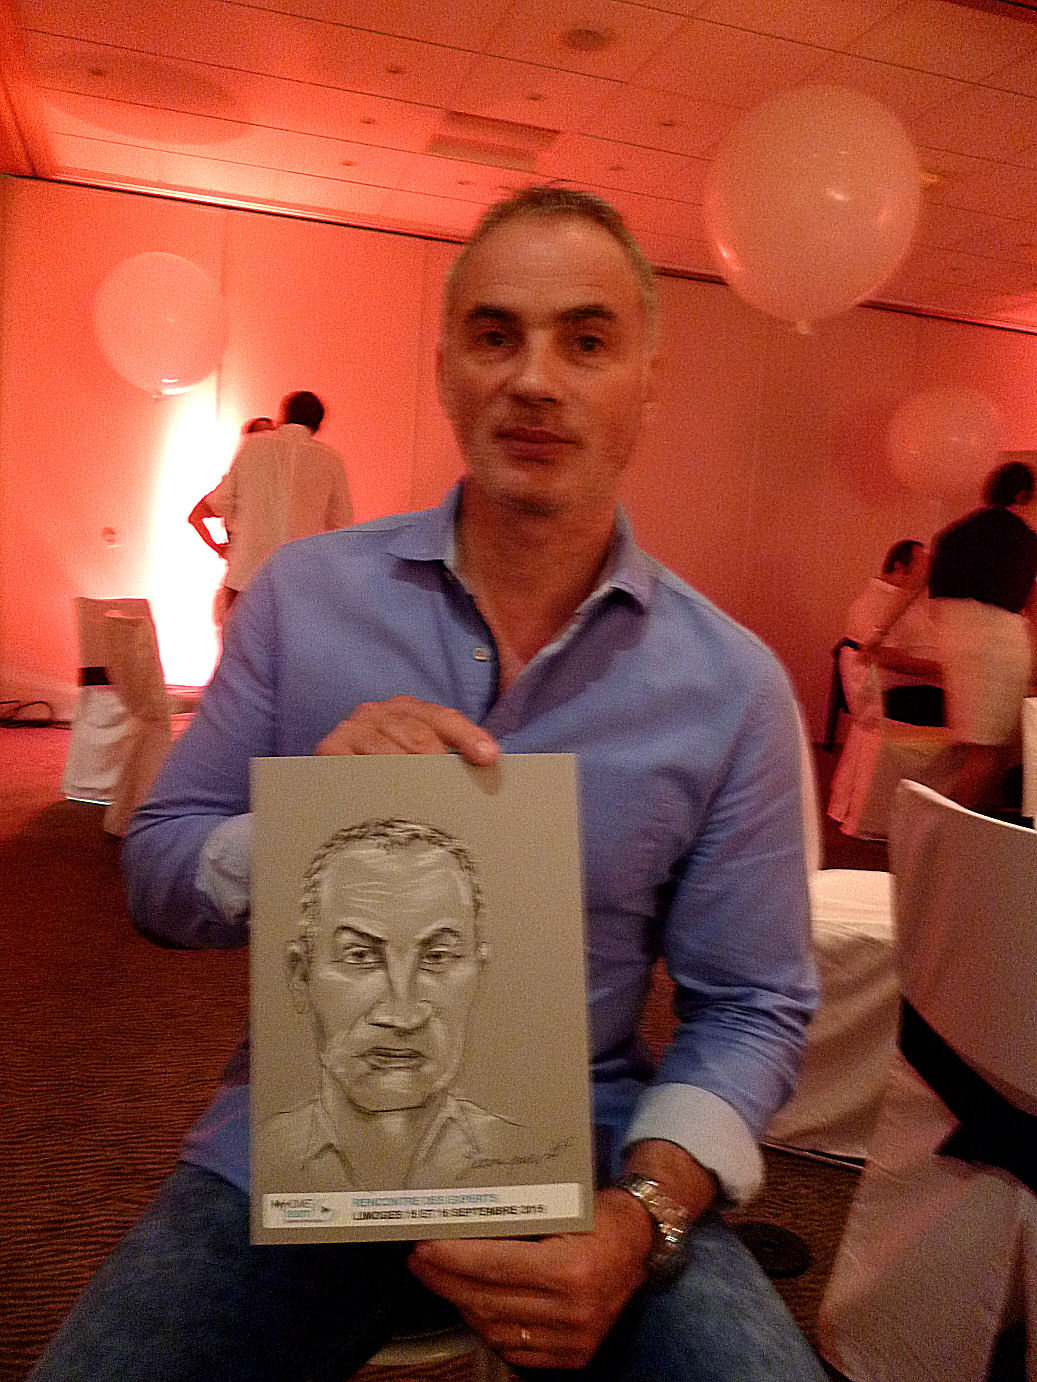 Jean-Paul caricature par JEF